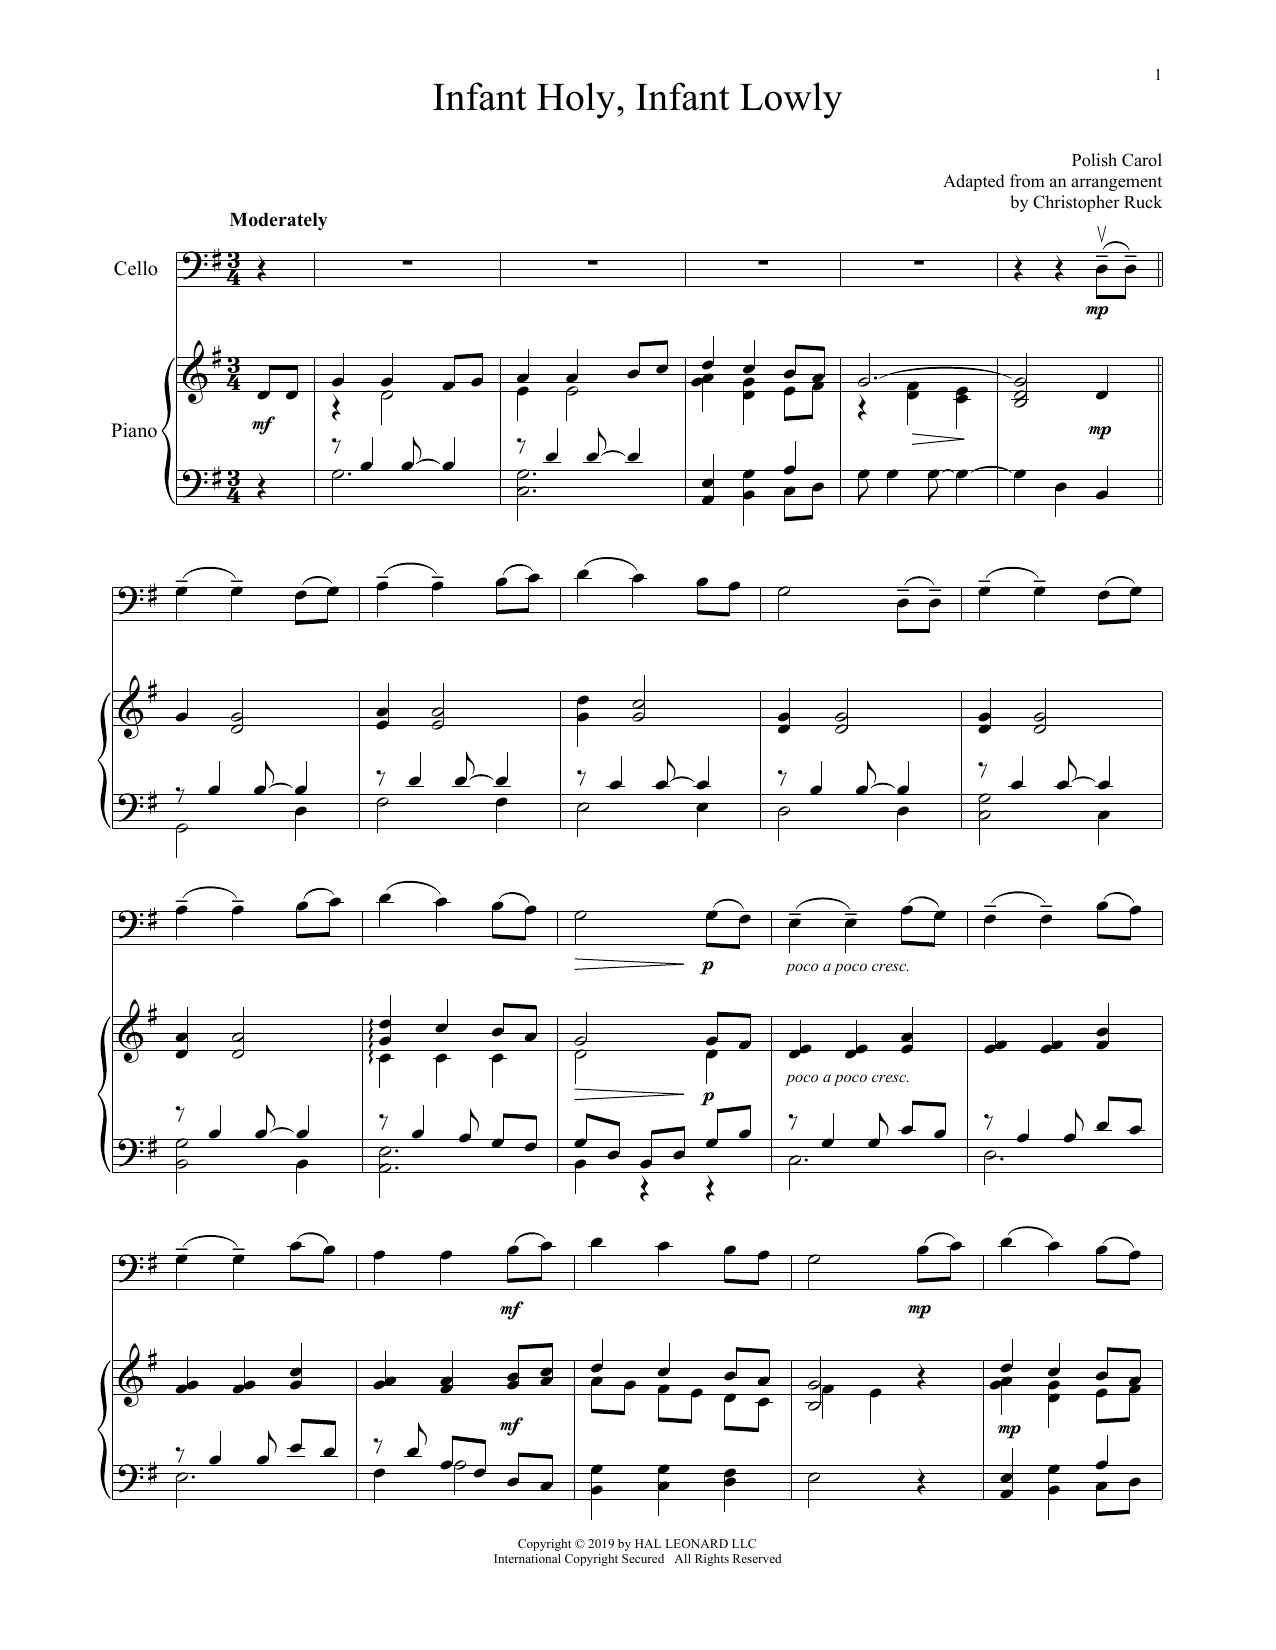 Infant Holy, Infant Lowly (Cello and Piano)